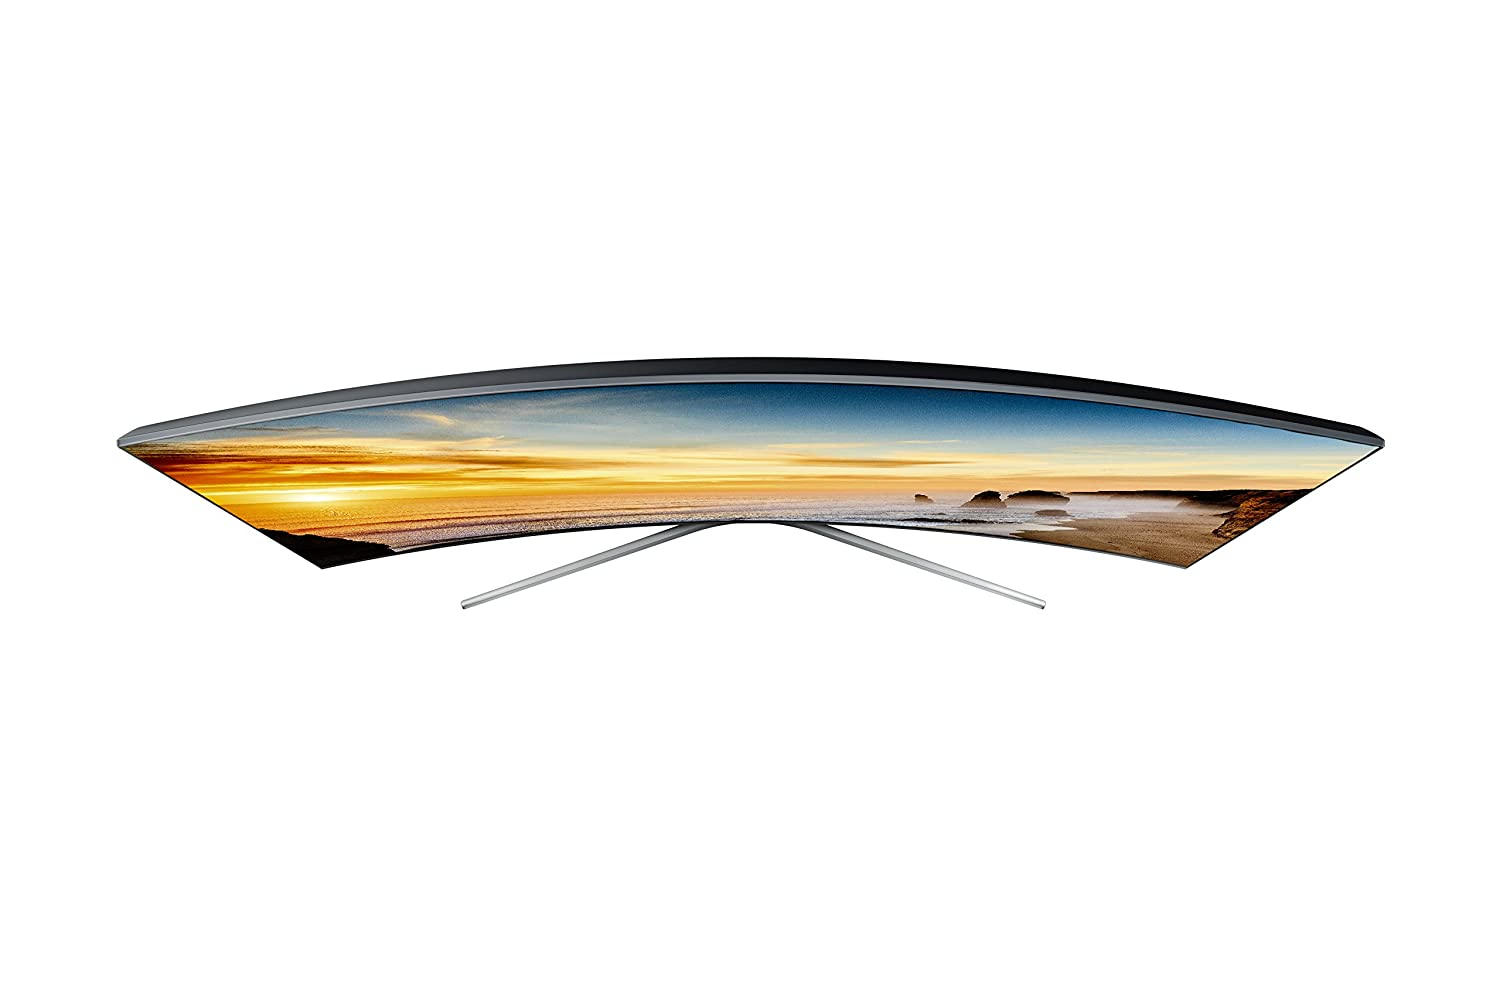 Samsung UN78KS9800 Curved 78-Inch 4K Ultra HD Smart LED TV (2016 ... for Led Tv Top View  56bof